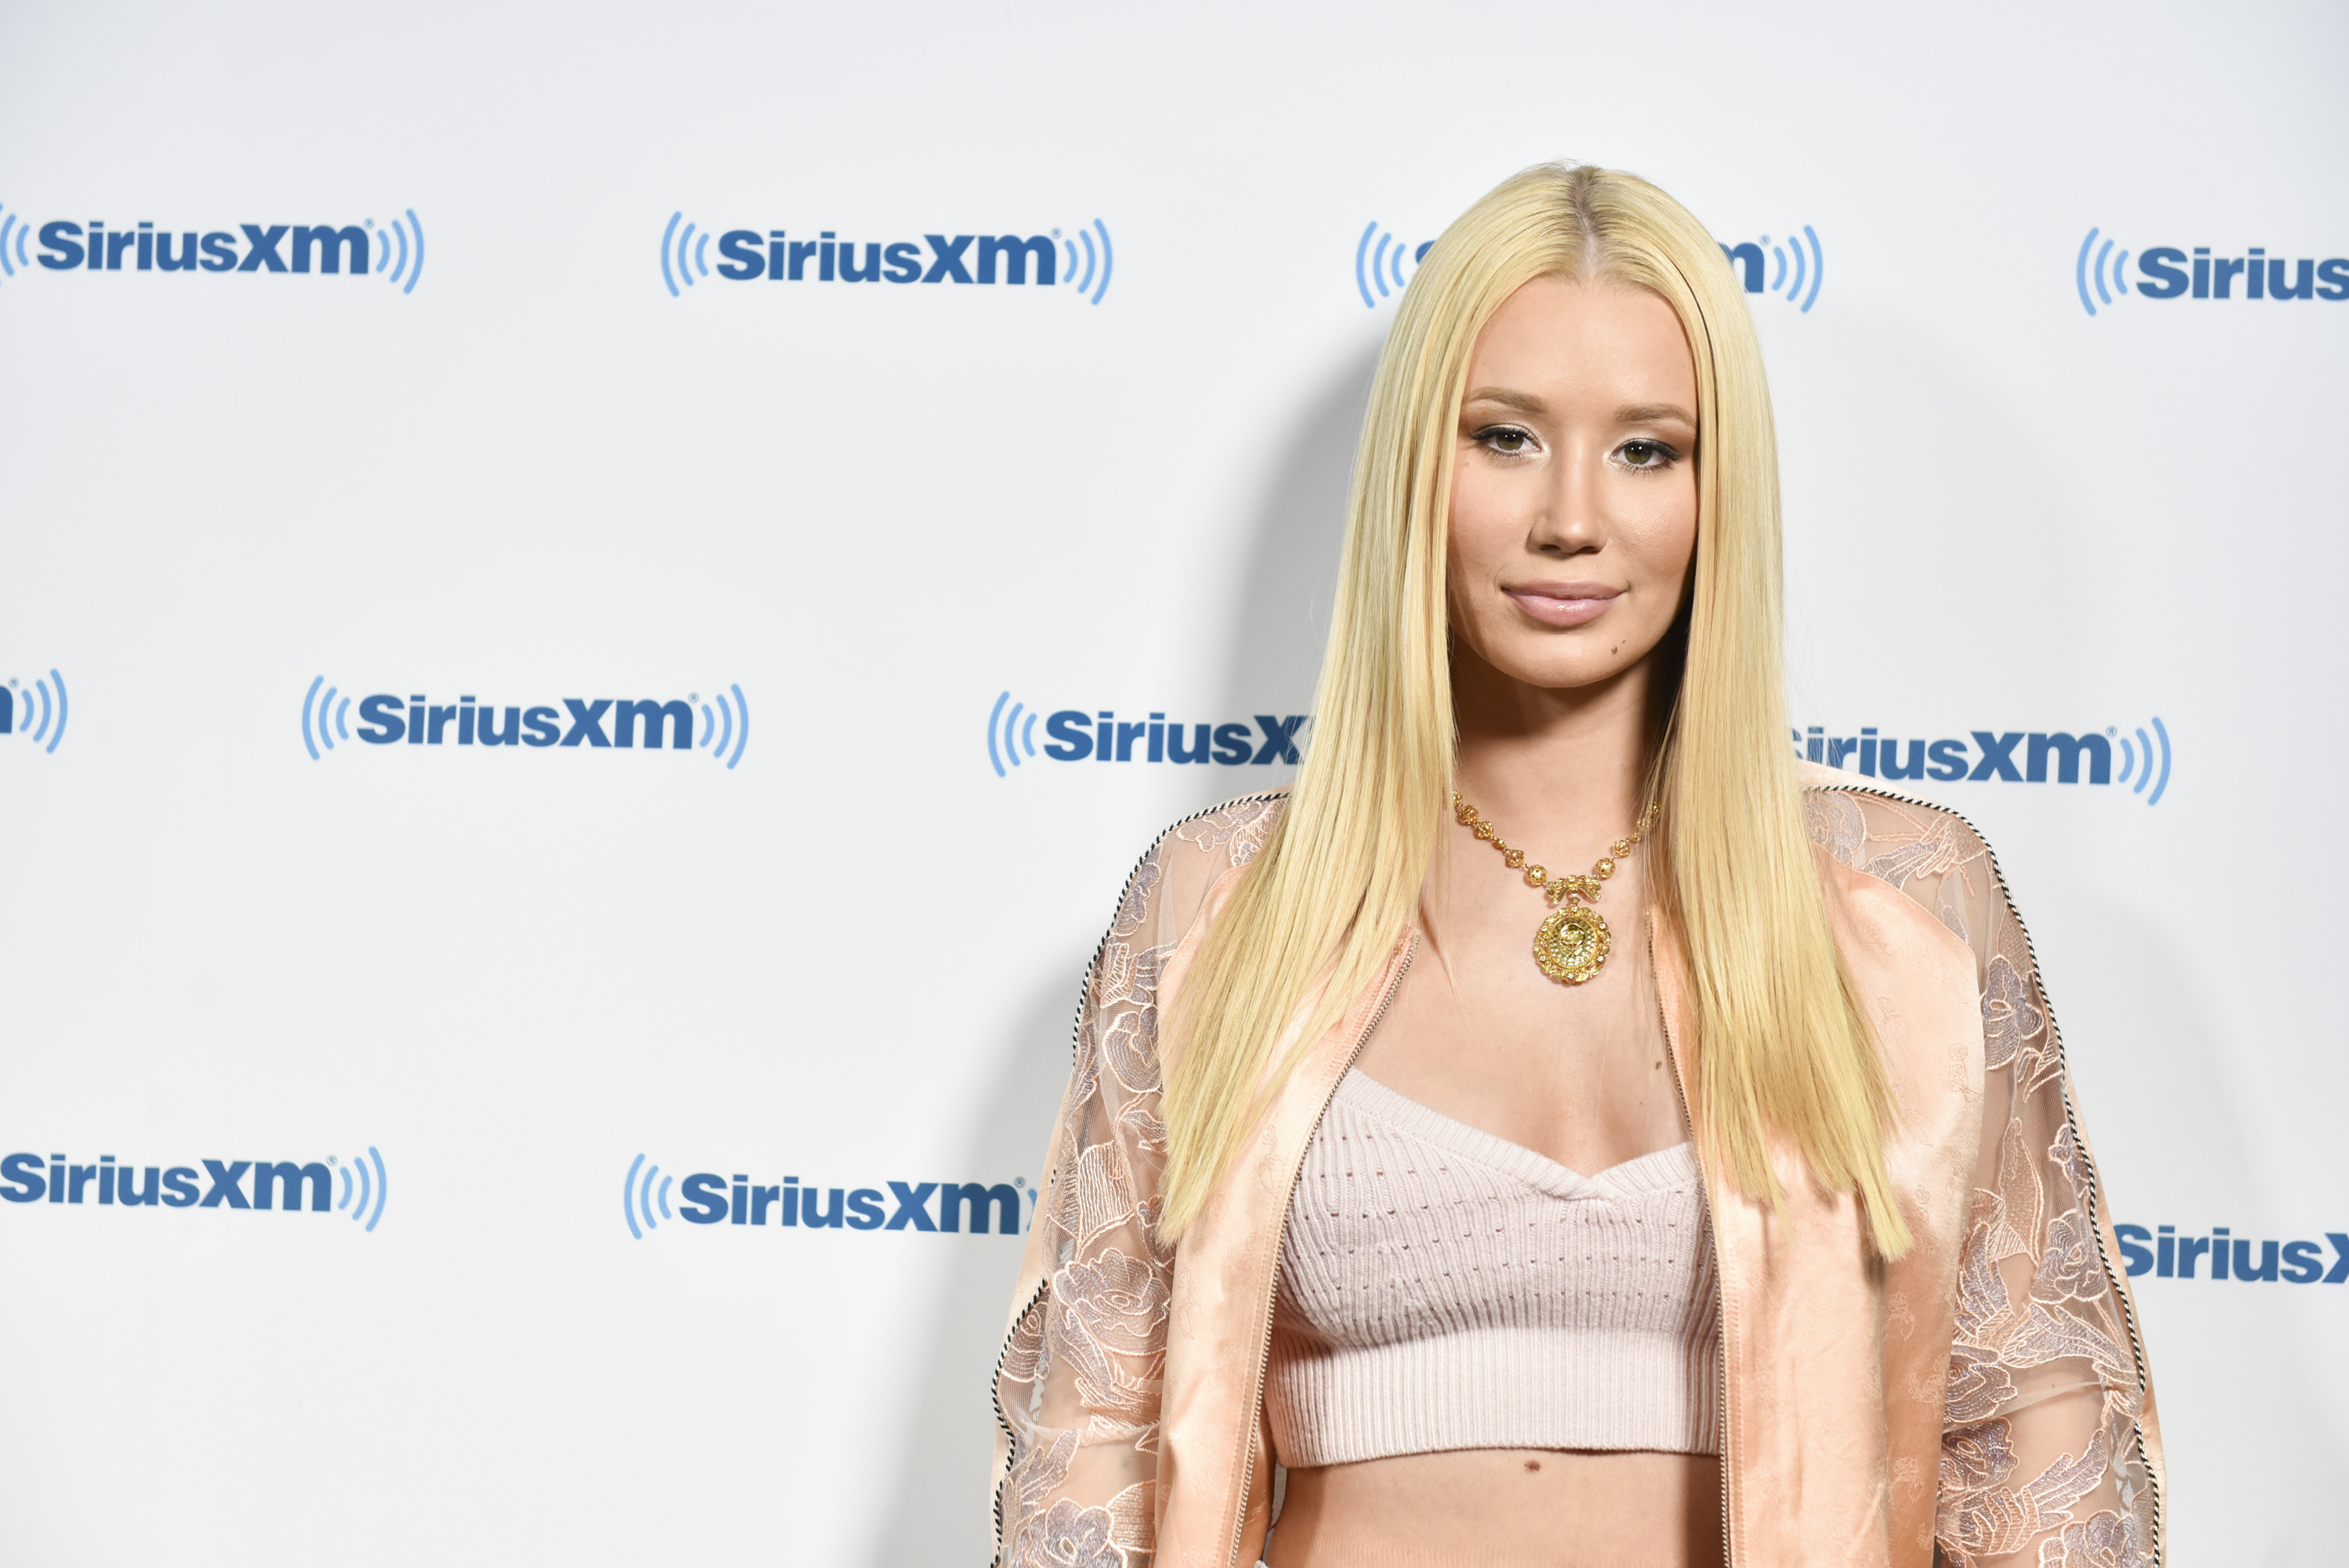 Iggy Azalea visits  Hits 1 In Hollywood  on SiriusXM Hits 1 Channel at The SiriusXM Studios In Los Angeles on May 18, 2017 in Los Angeles, California.